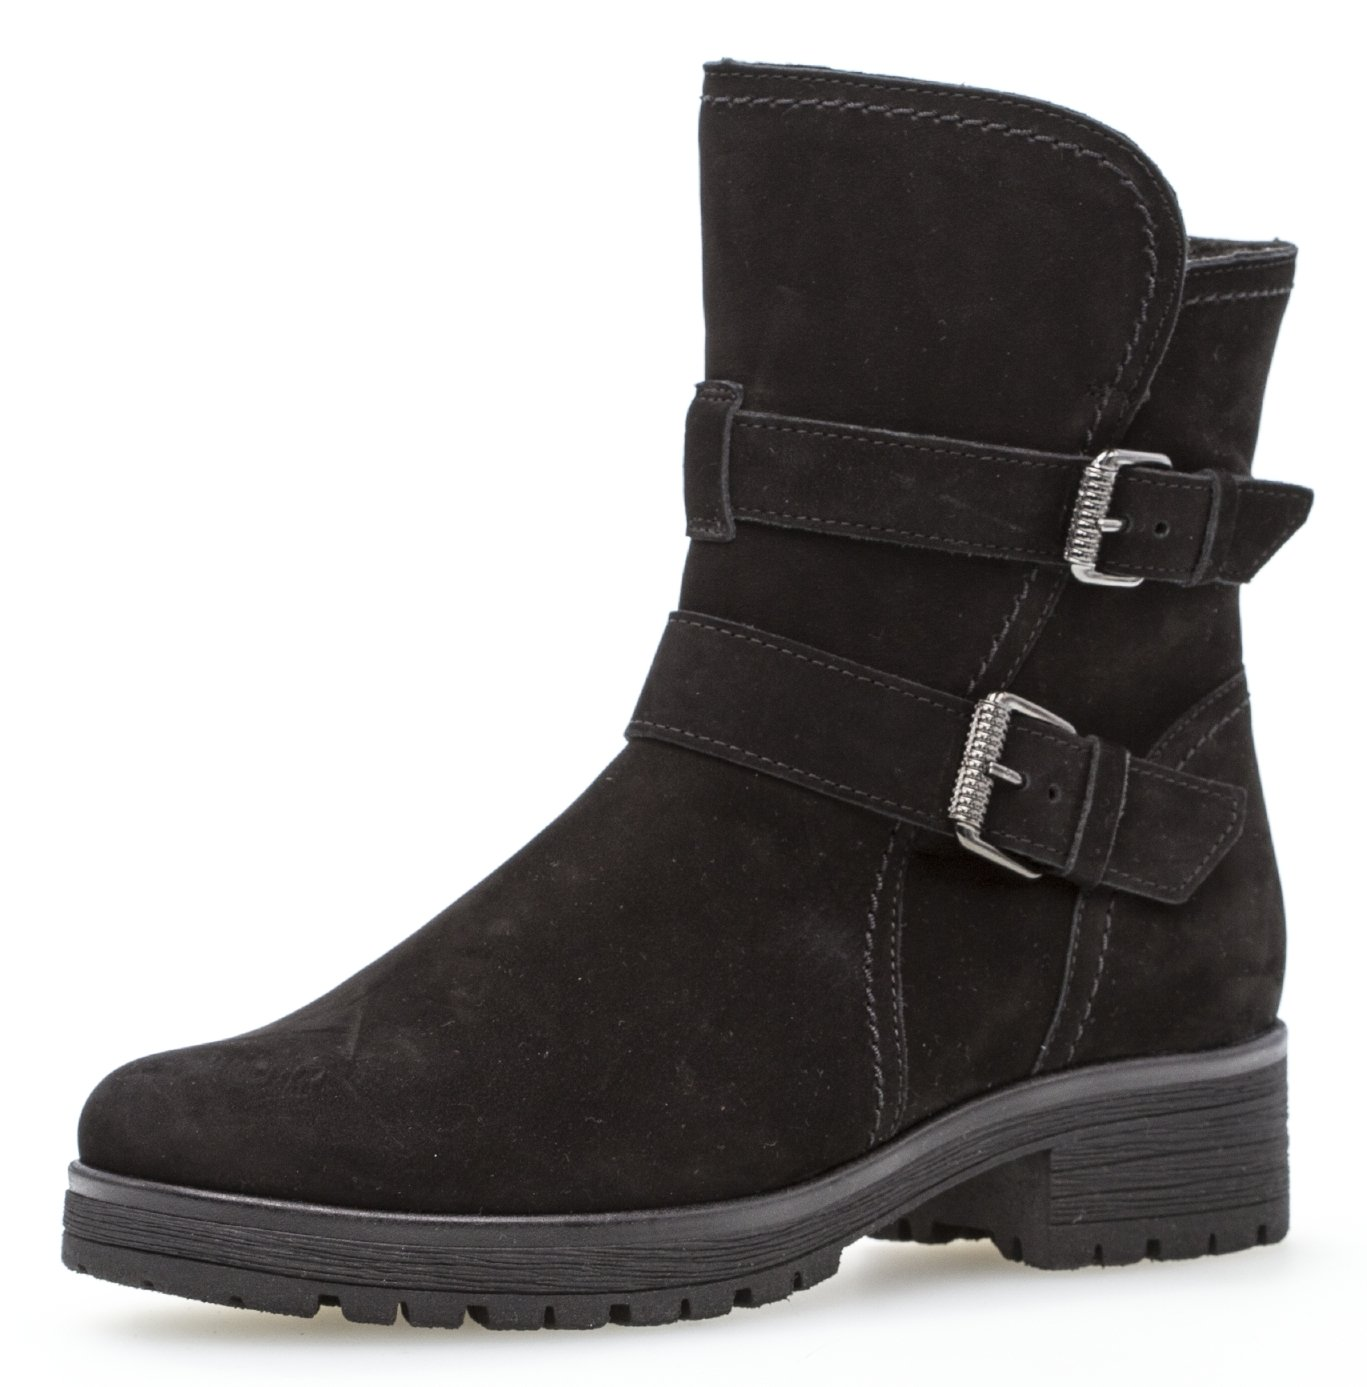 Gabor Ankle B076P7LC25 Gabor Boot Boot Shiraz 92.093 Black a87f803 - shopssong.space